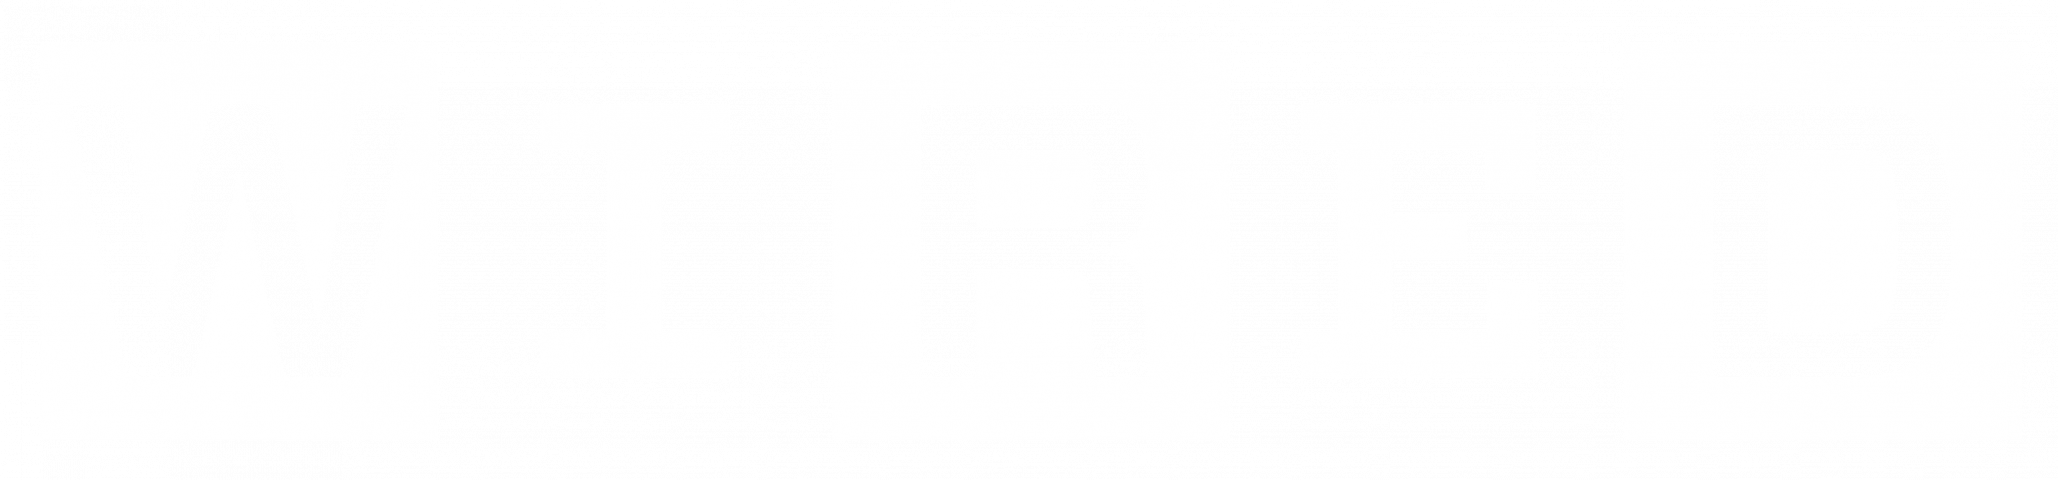 gallery/Wired-logo